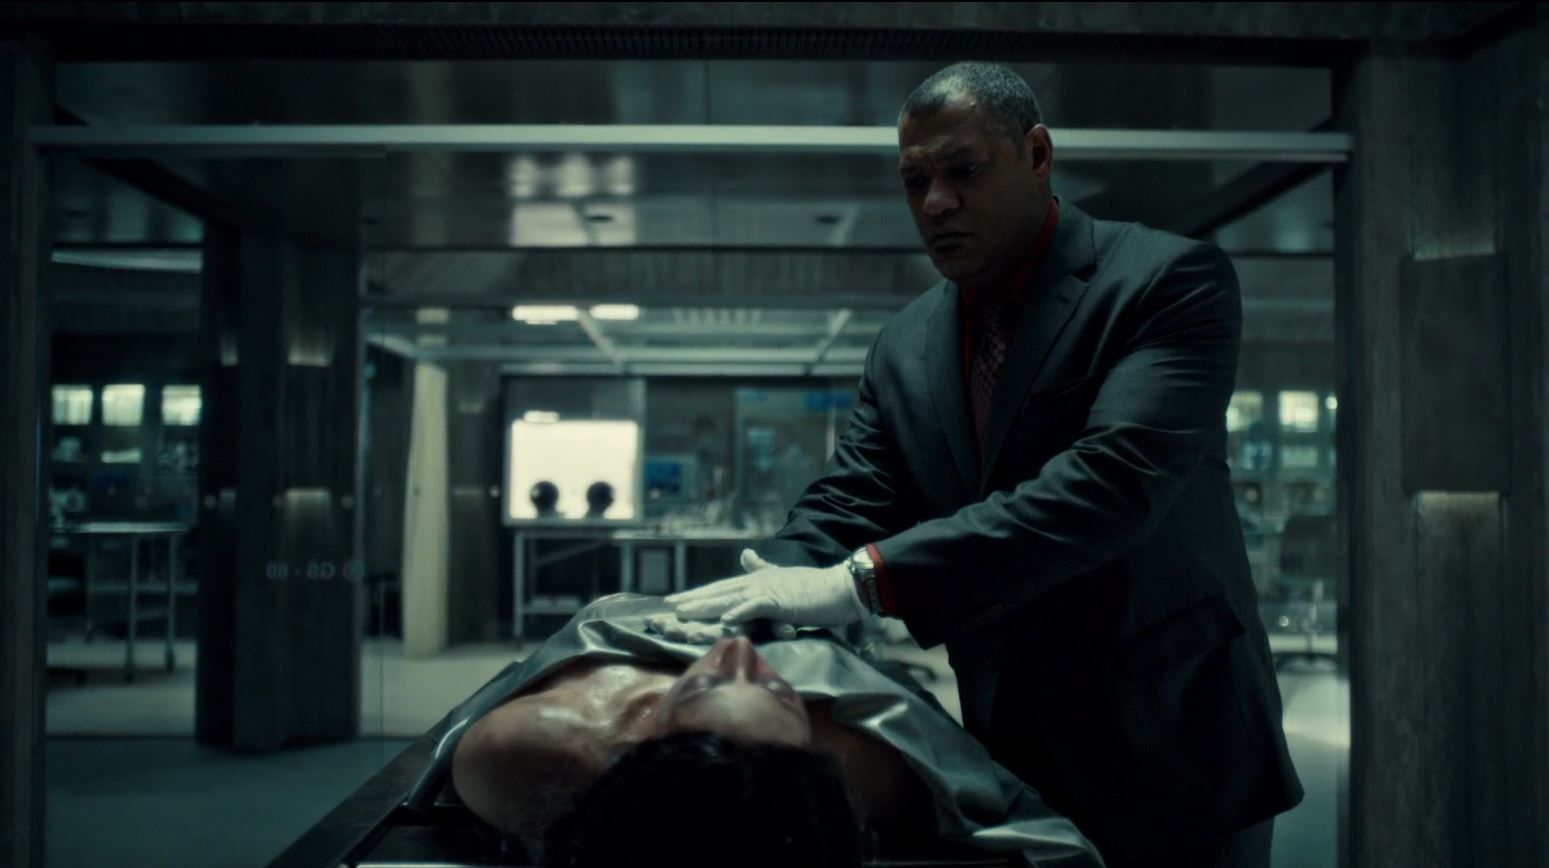 Hannibal Season 2 Episode 8 Su-zakana - Victim with a heartbeat